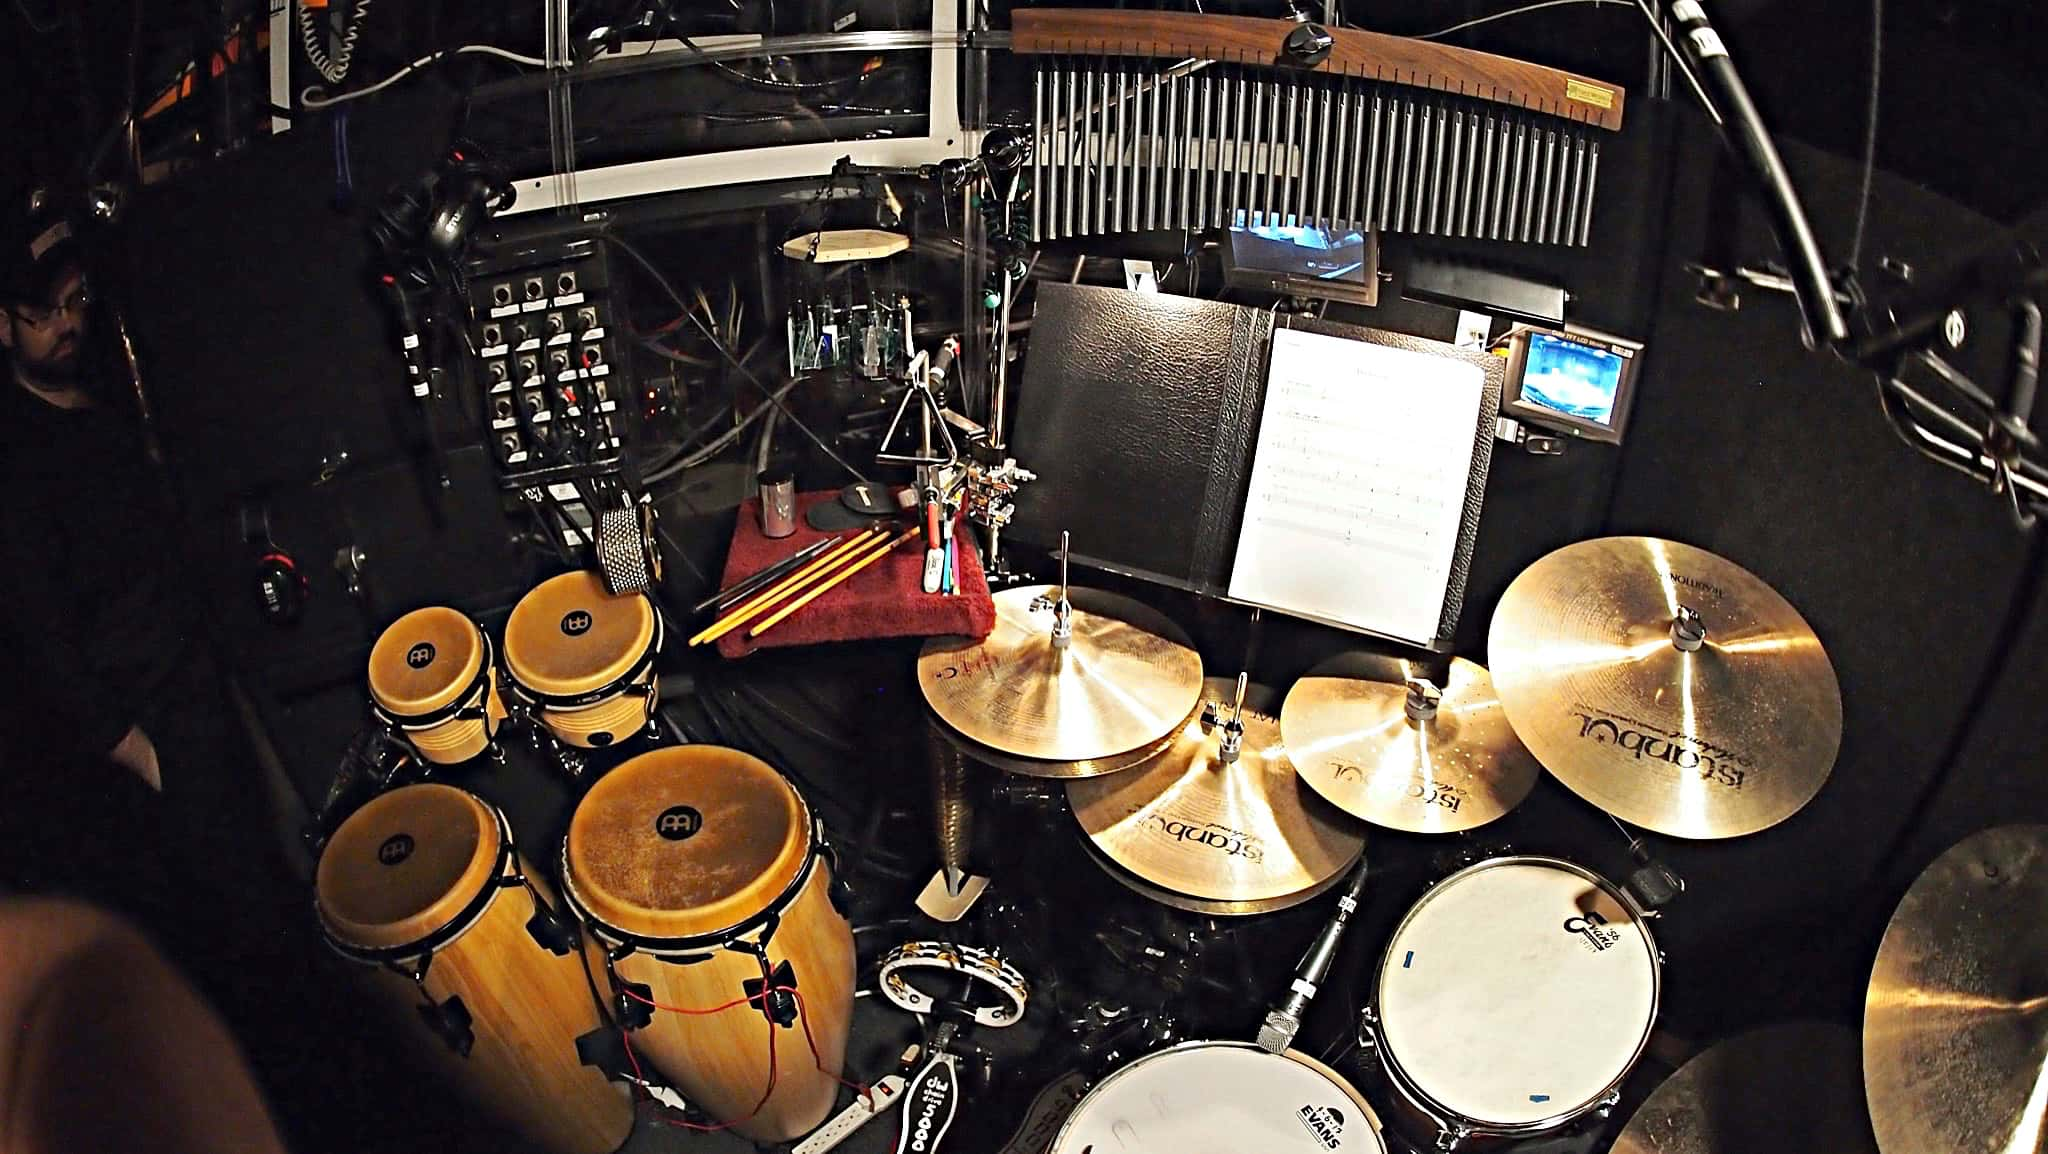 Adam Wolfe's setup for the Broadway production of Bandstand currently running at Bernard B Jacobs Theatre in New York City.